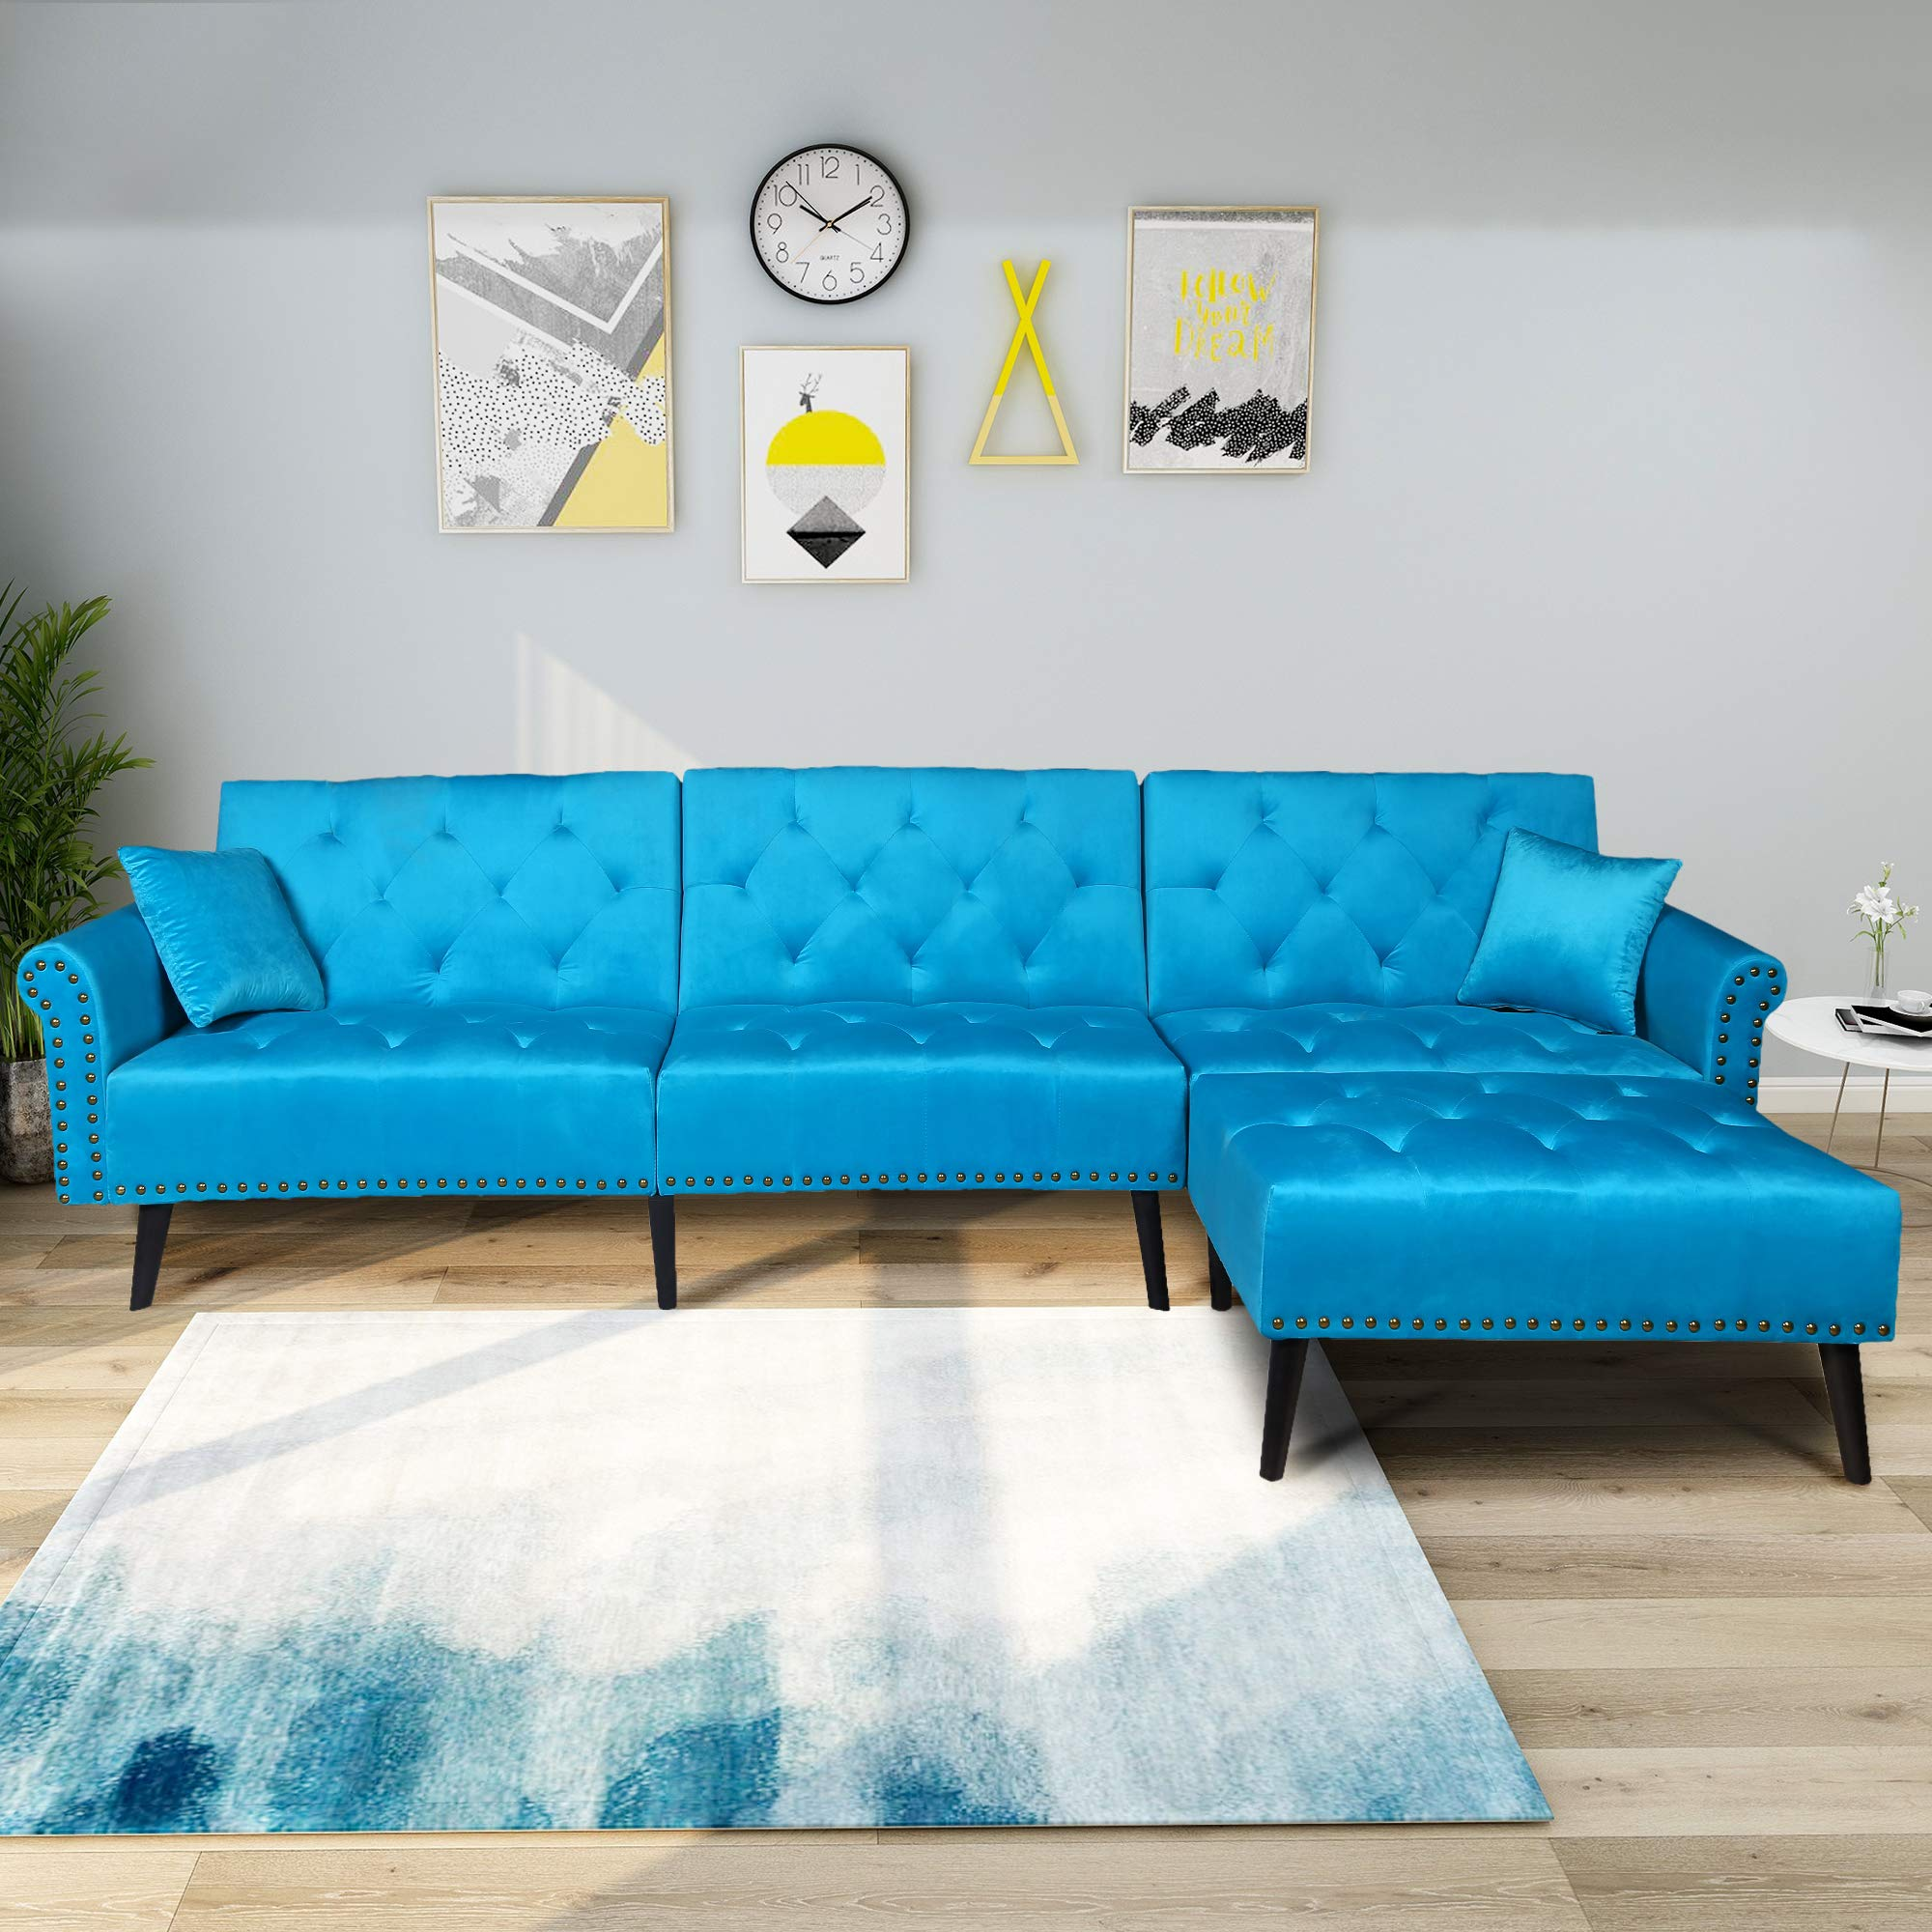 SEAPHY Modern Large Velvet Fabric Sectional Sofa L-Shaped Corner Couch Sofa Bed Set with Reversible Chaise Lounge for Living Room, 2 Pillows Included (Sky Blue) by SEAPHY